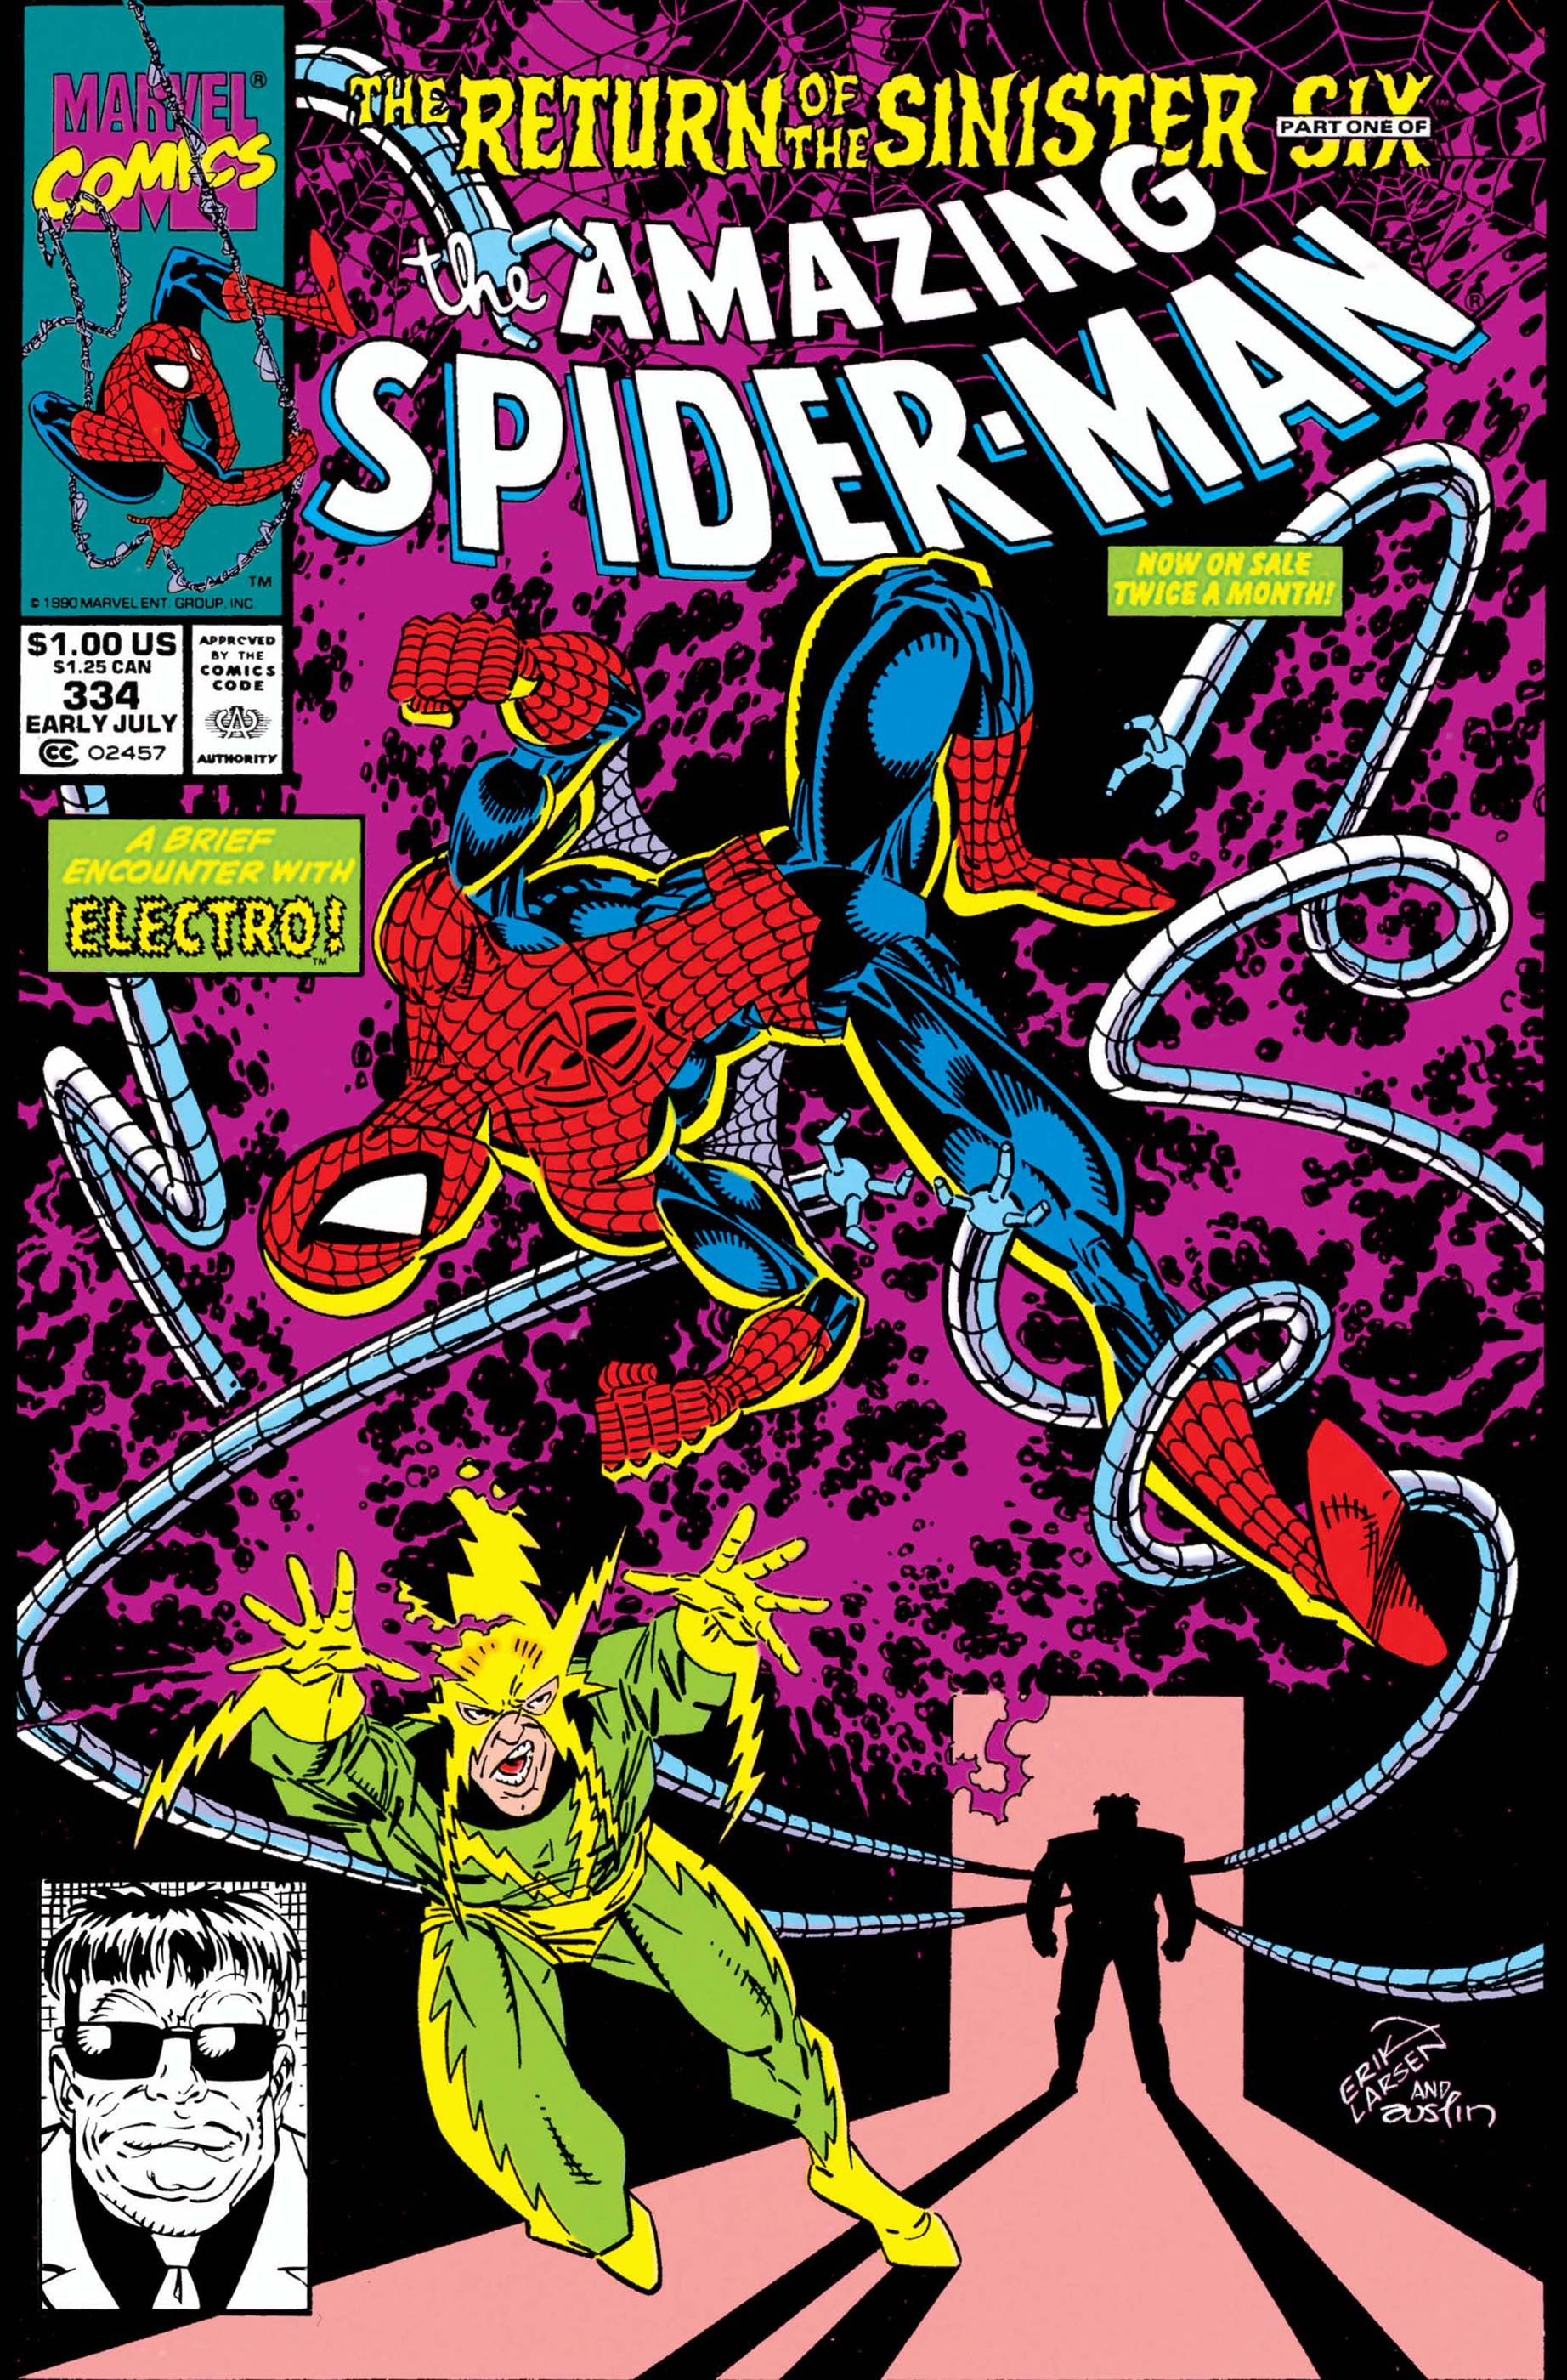 The Amazing Spider-Man (1963) #334